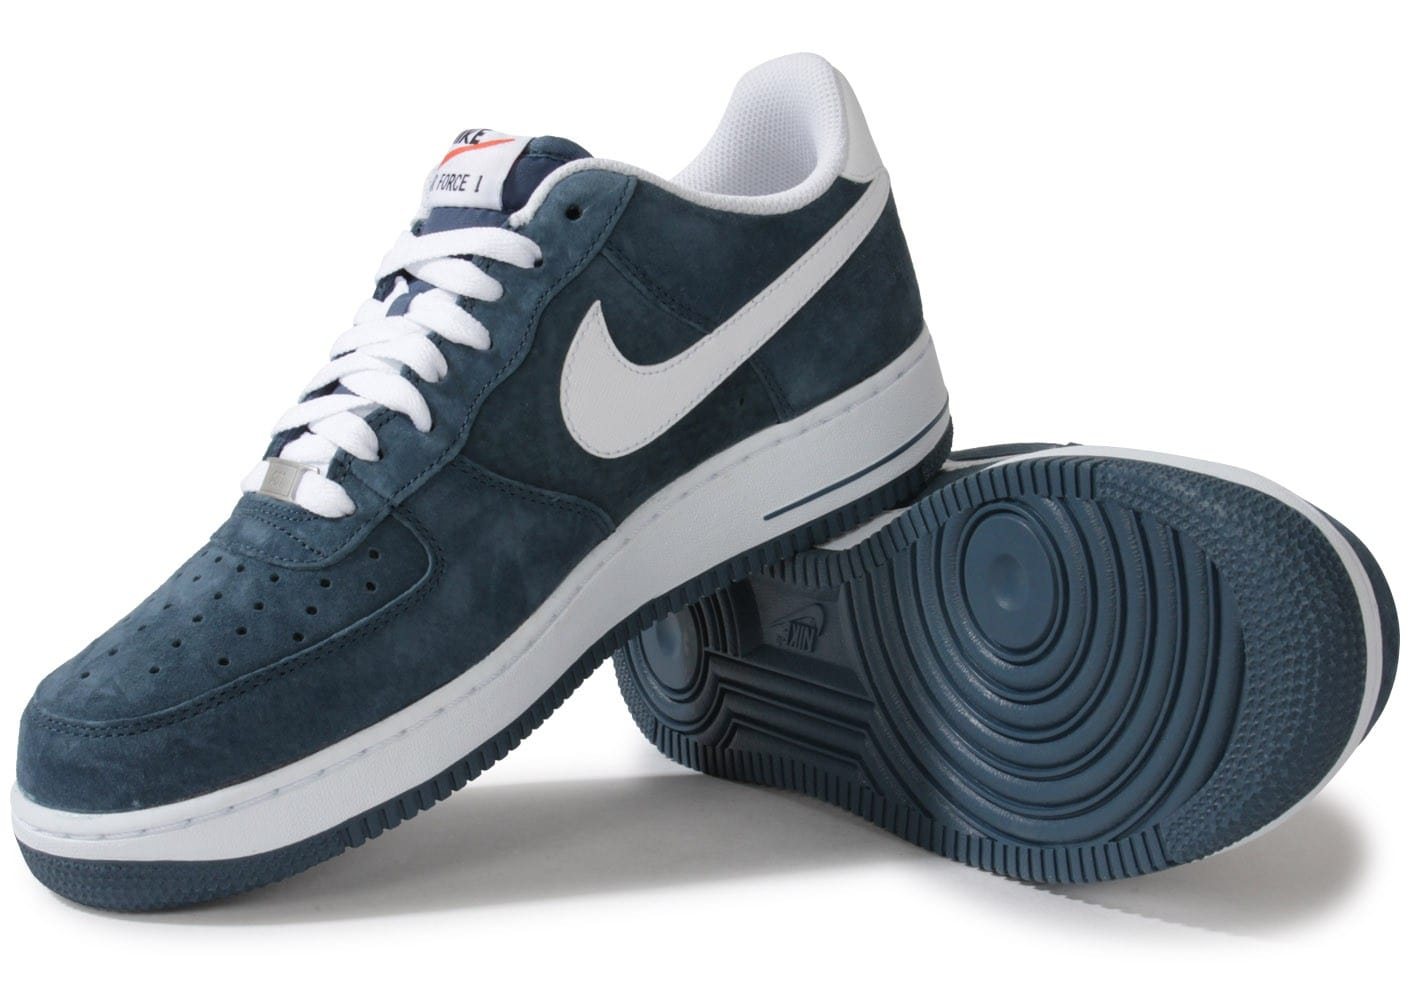 sale retailer 59652 a58fe ... italy chaussures nike air force 1 suede slate bleue vue intérieure  5b11a cb341 ...